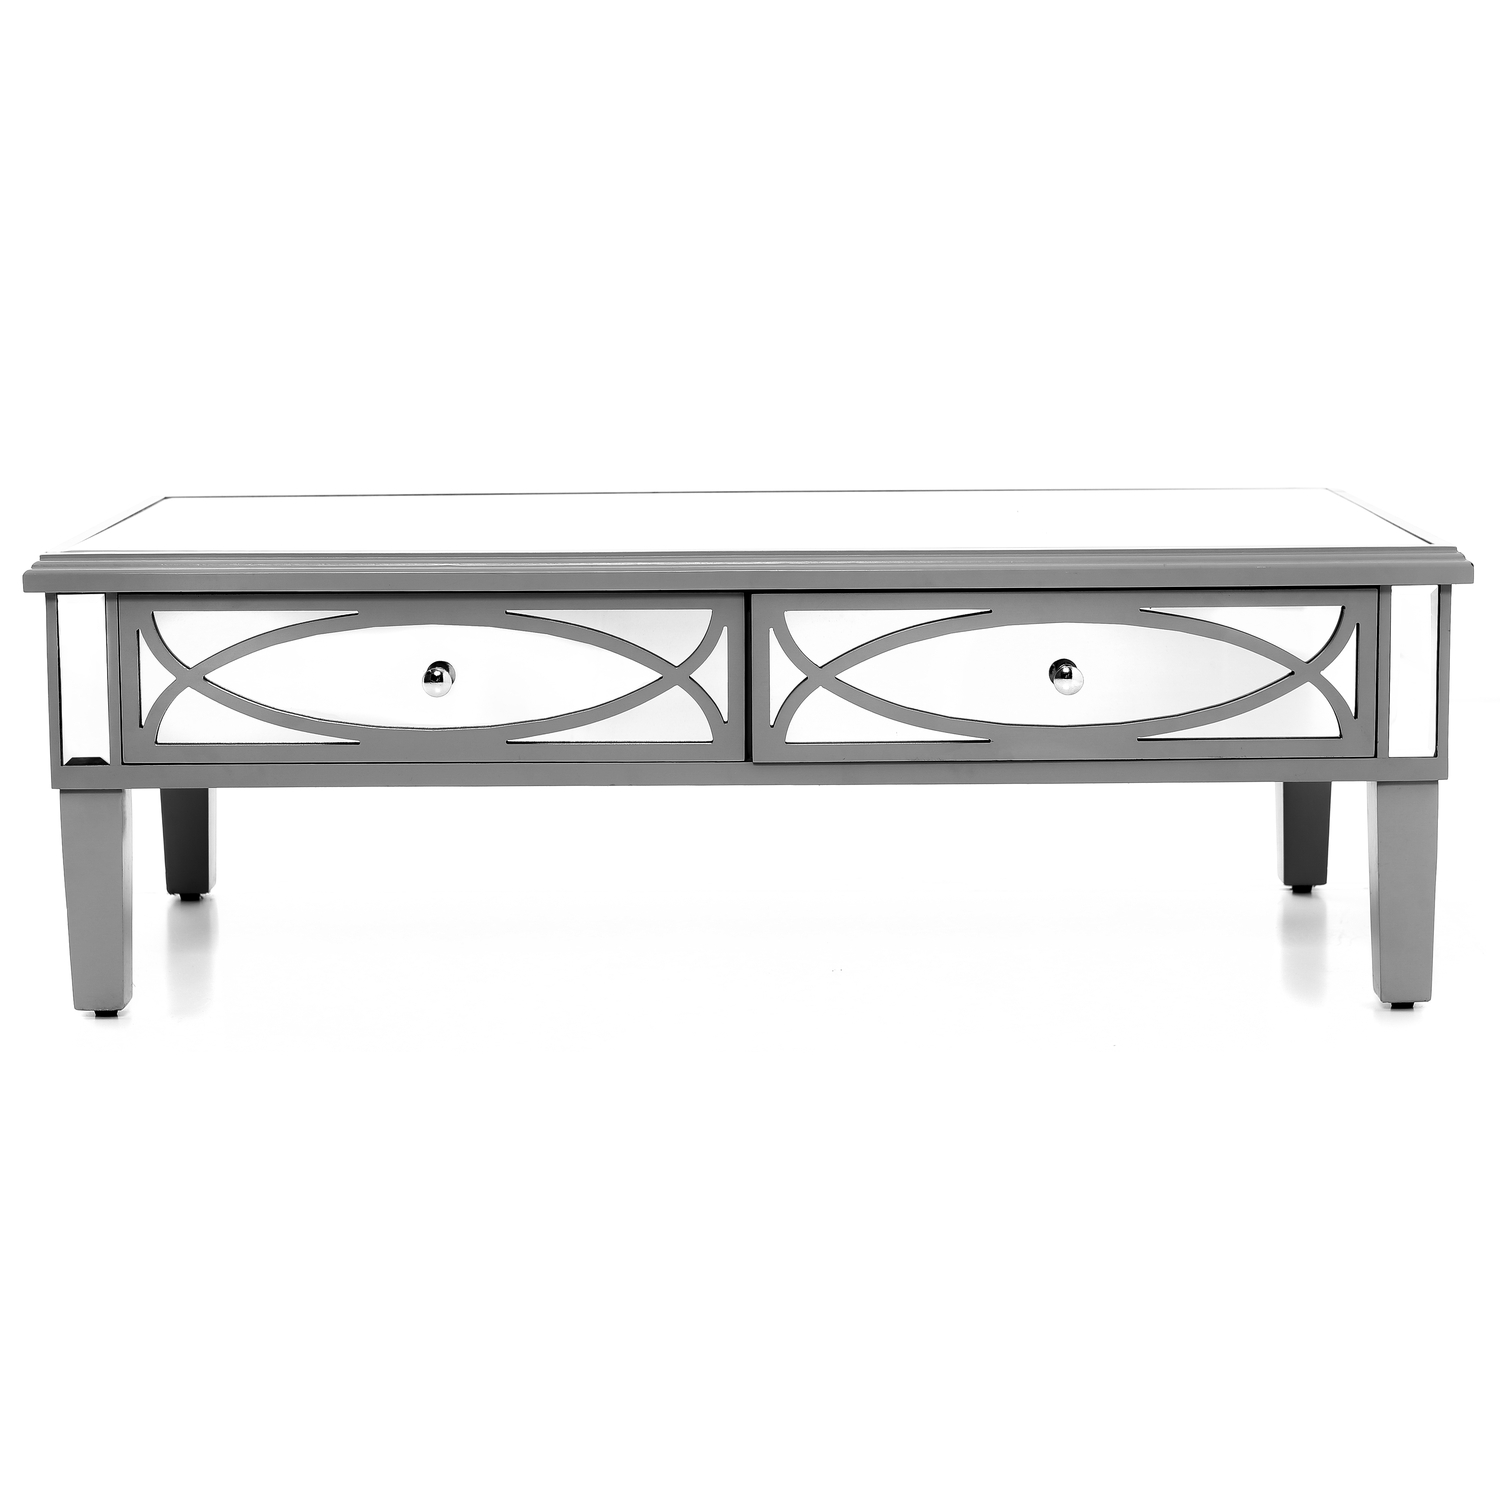 Paloma Collection Mirrored Coffee Table - Image 1